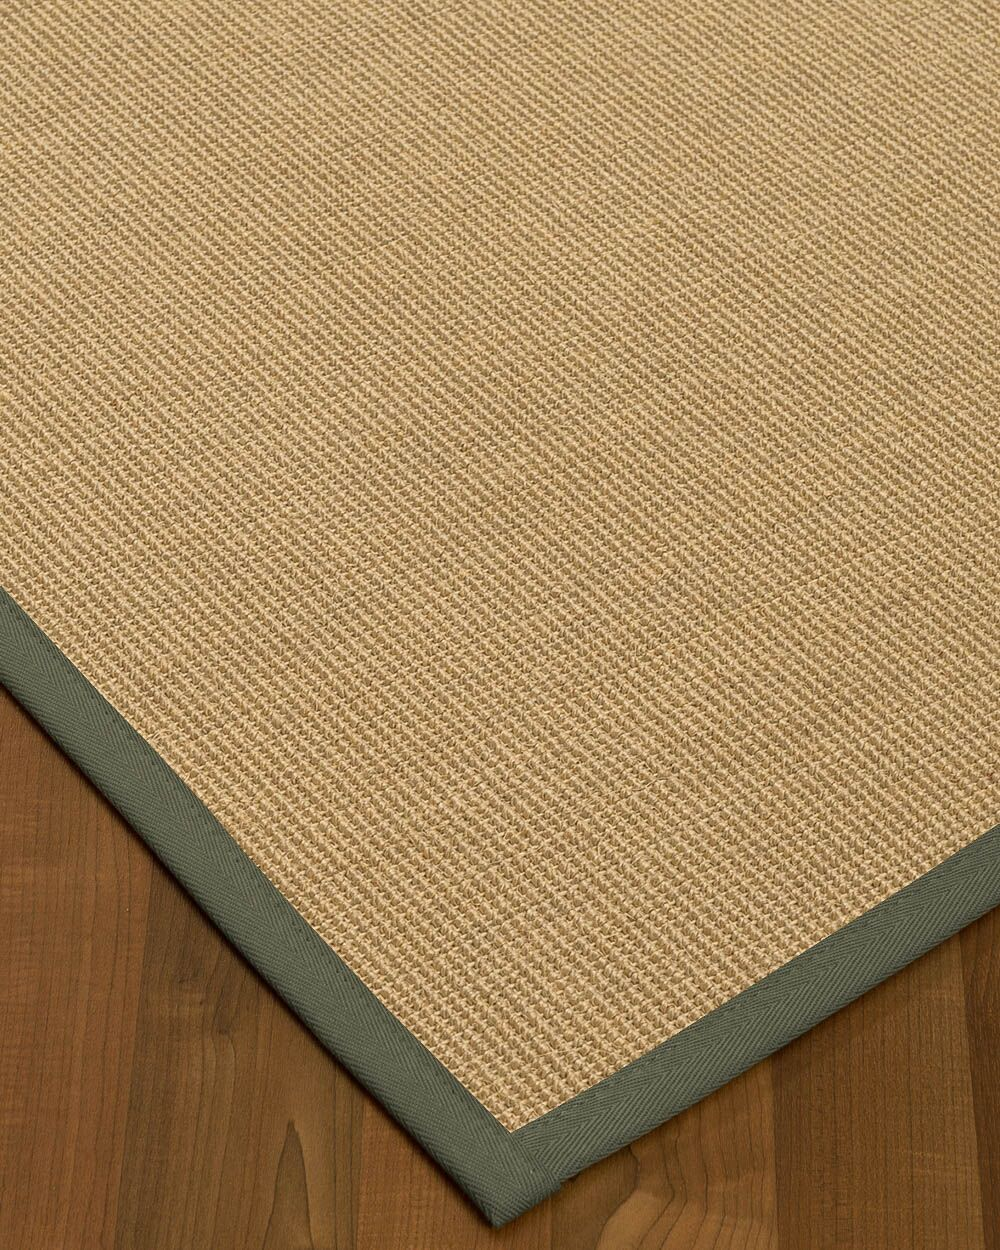 Atwell Border Hand-Woven Beige/Stone Area Rug Rug Size: Rectangle 8' x 10', Rug Pad Included: Yes